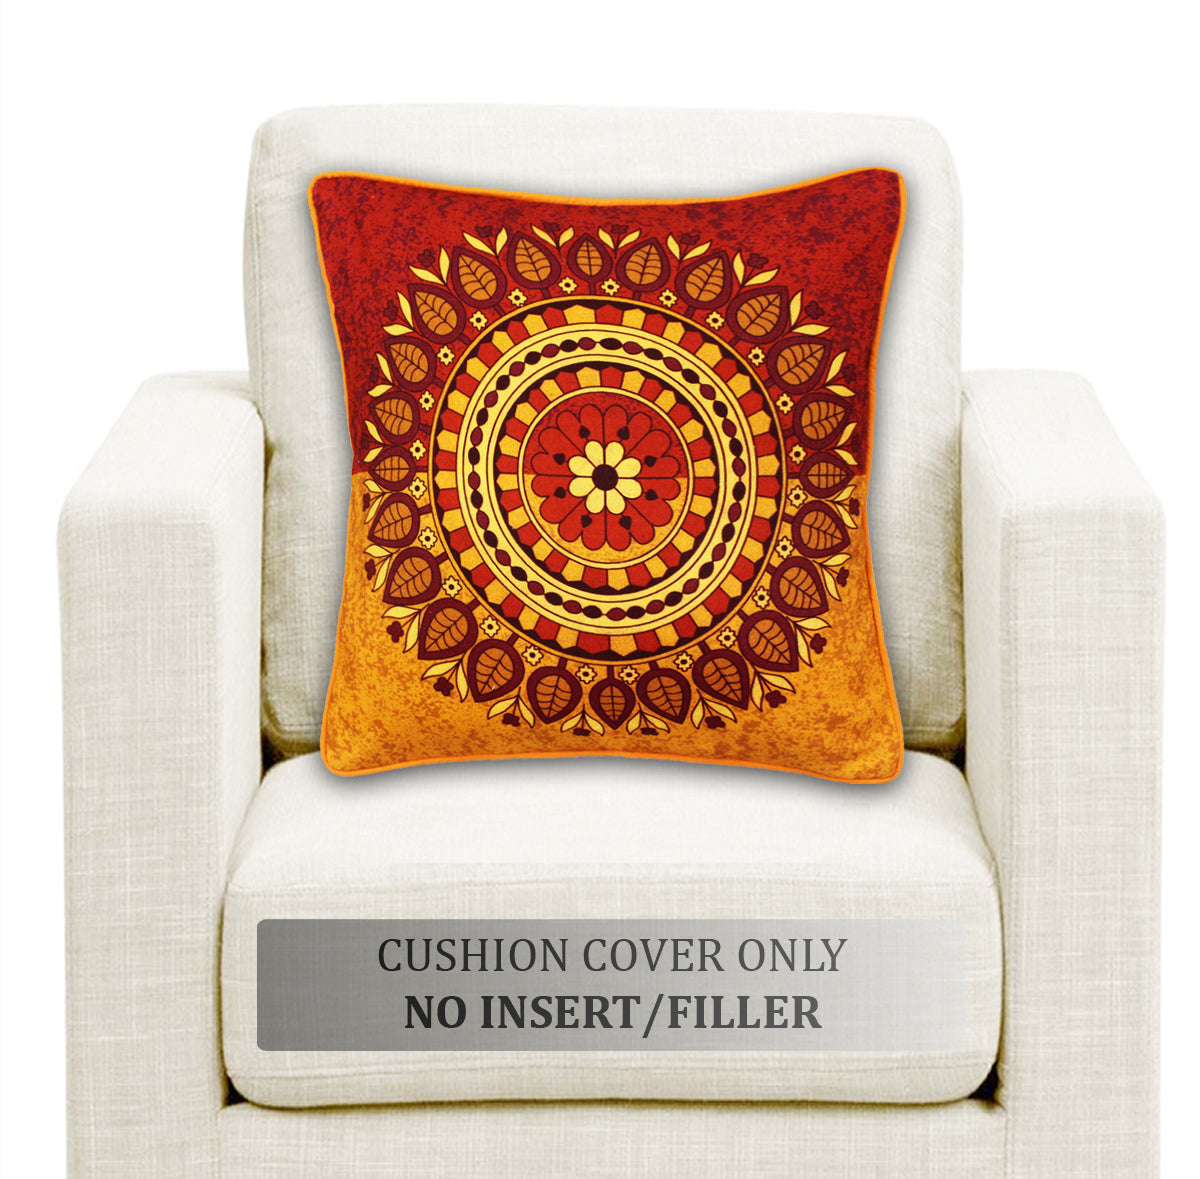 AURAVE DIGITAL Printed Cotton Cushion Covers - Red & Orange